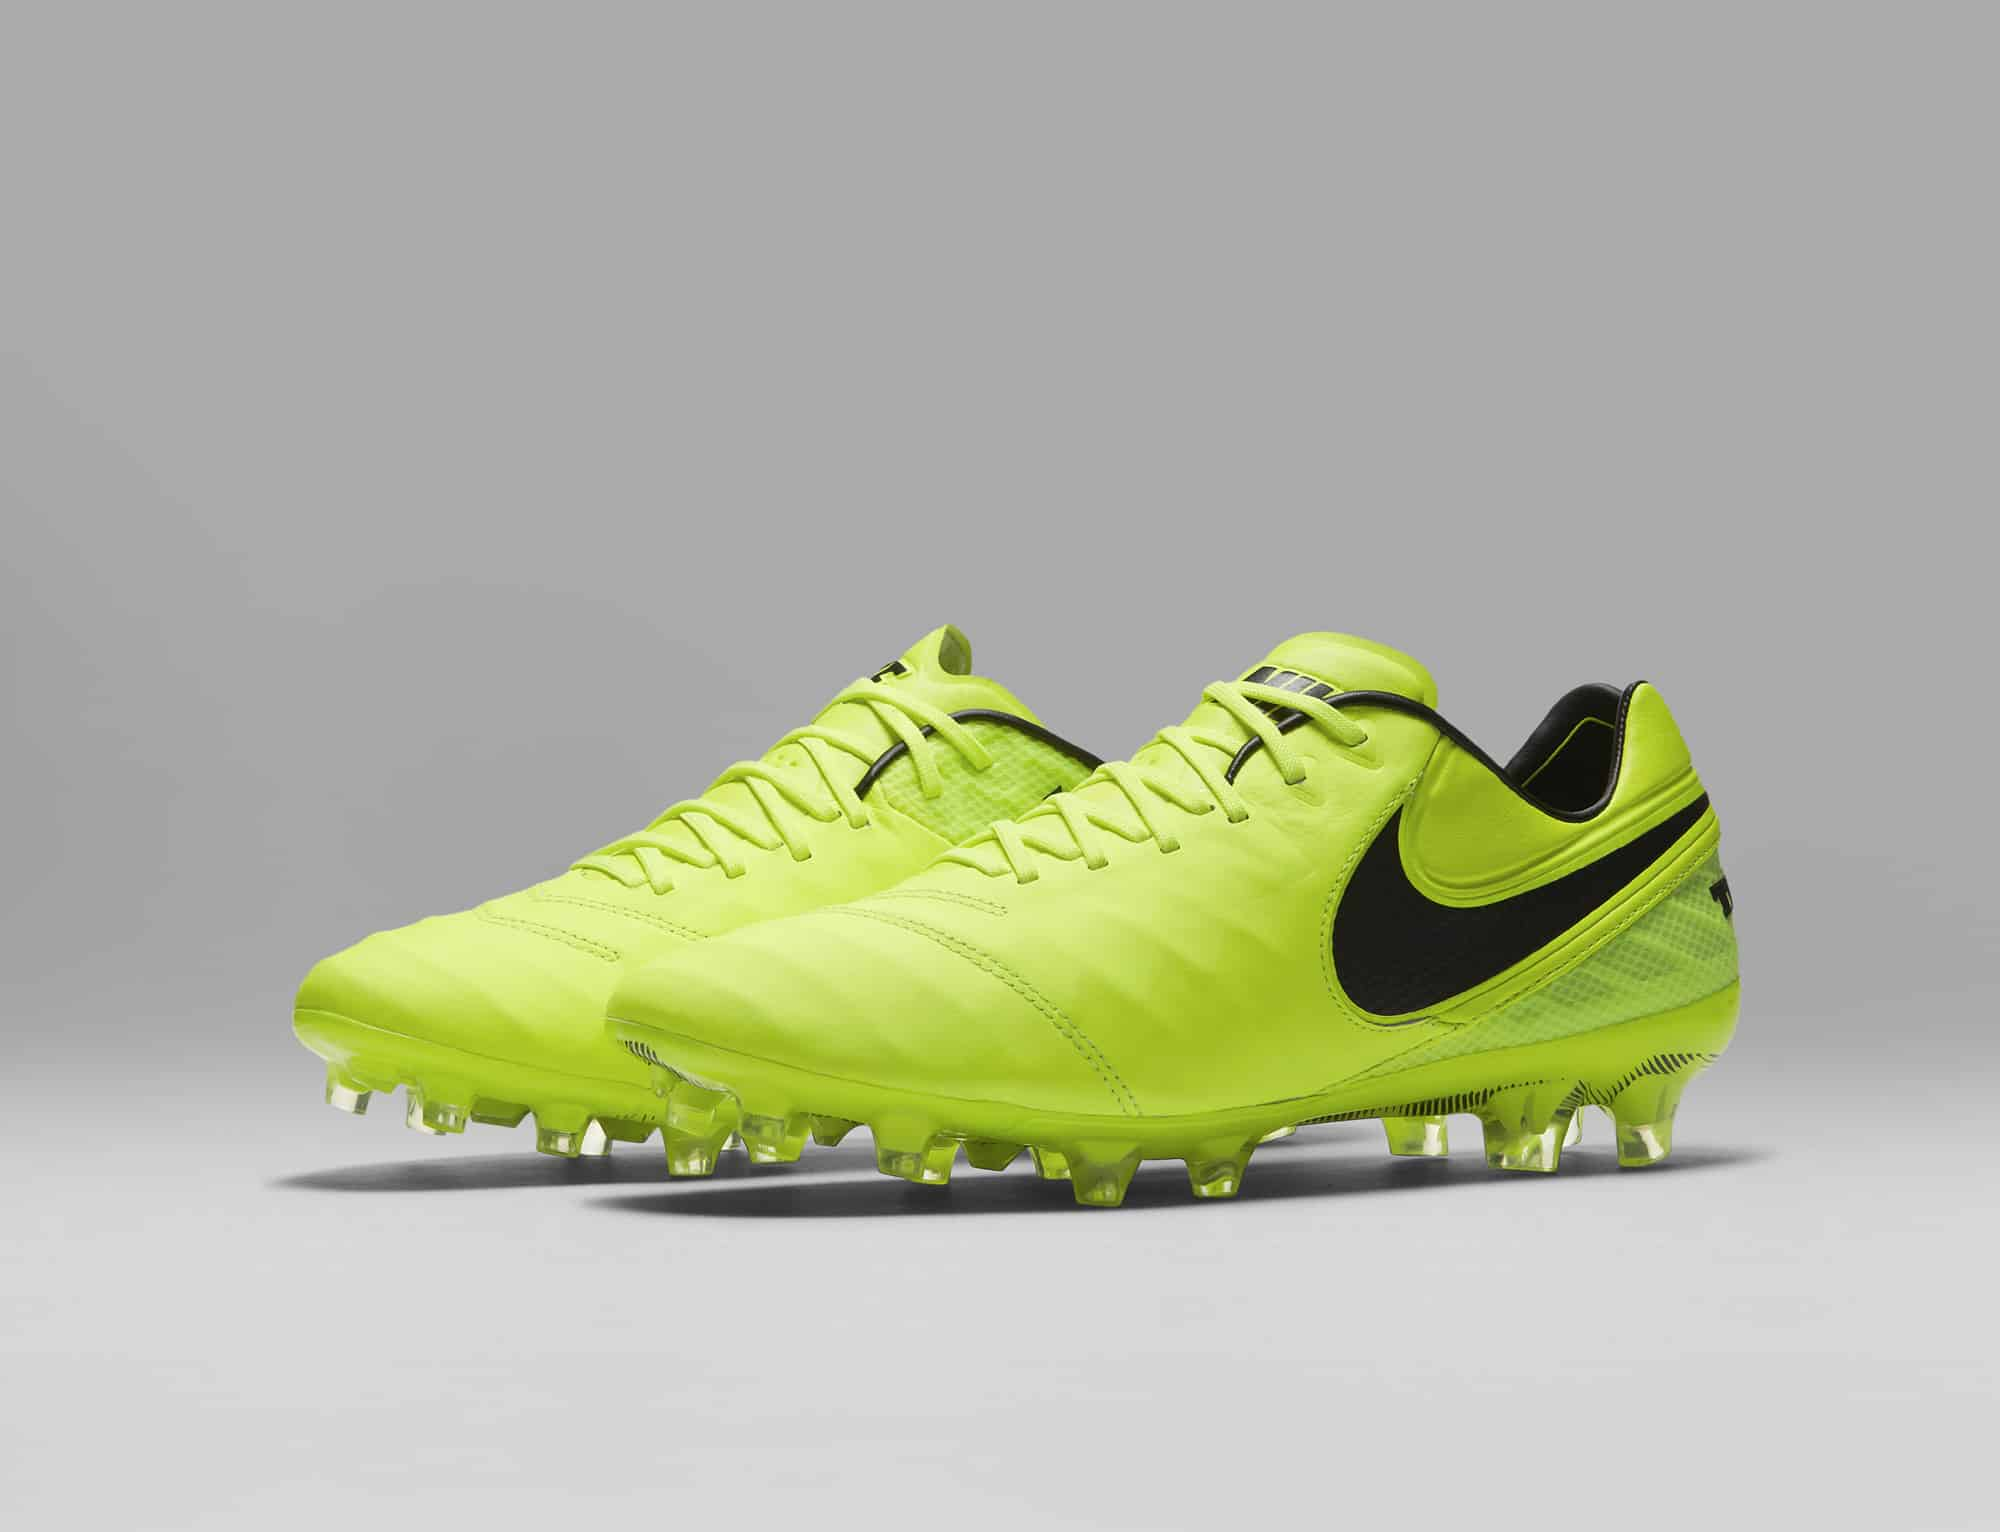 chaussures-football-Nike-Tiempo-Legend-6-Femmes-Women-Radiation-Flare-img3